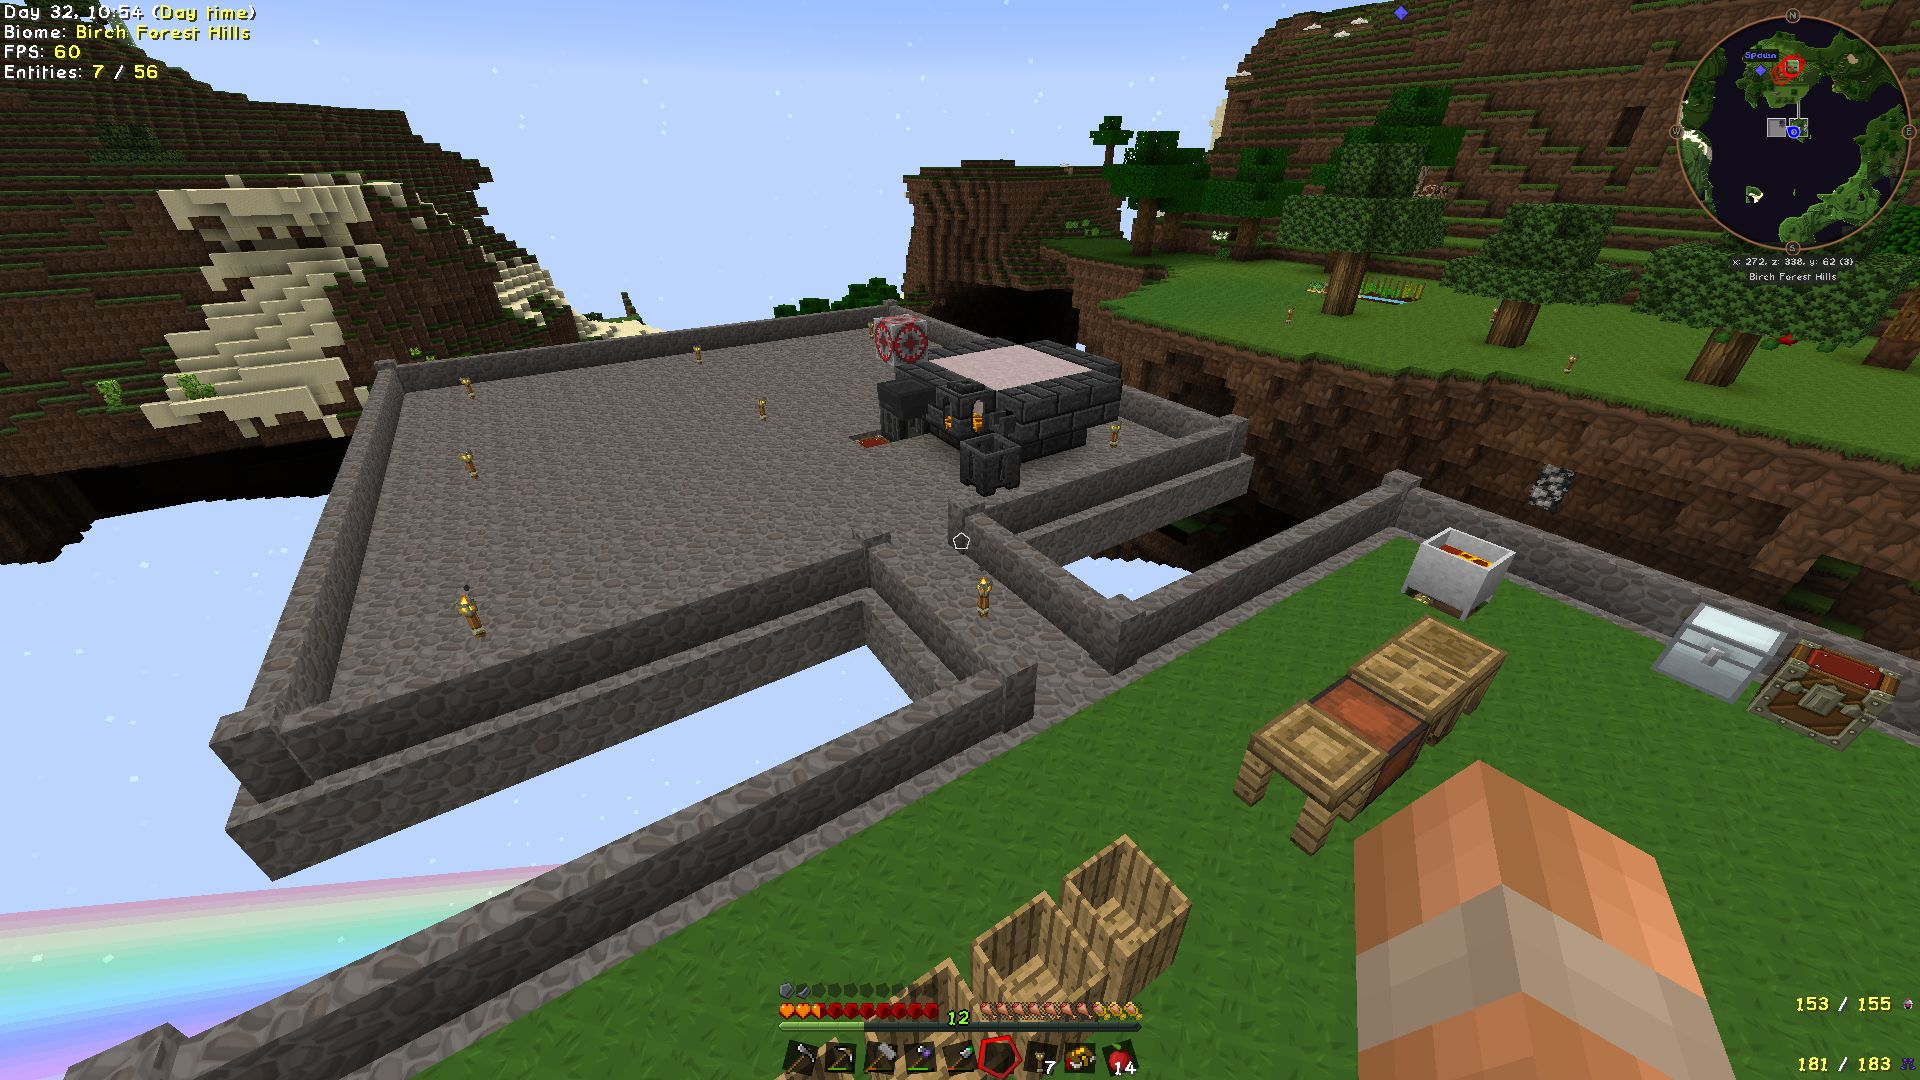 The smeltery is born!